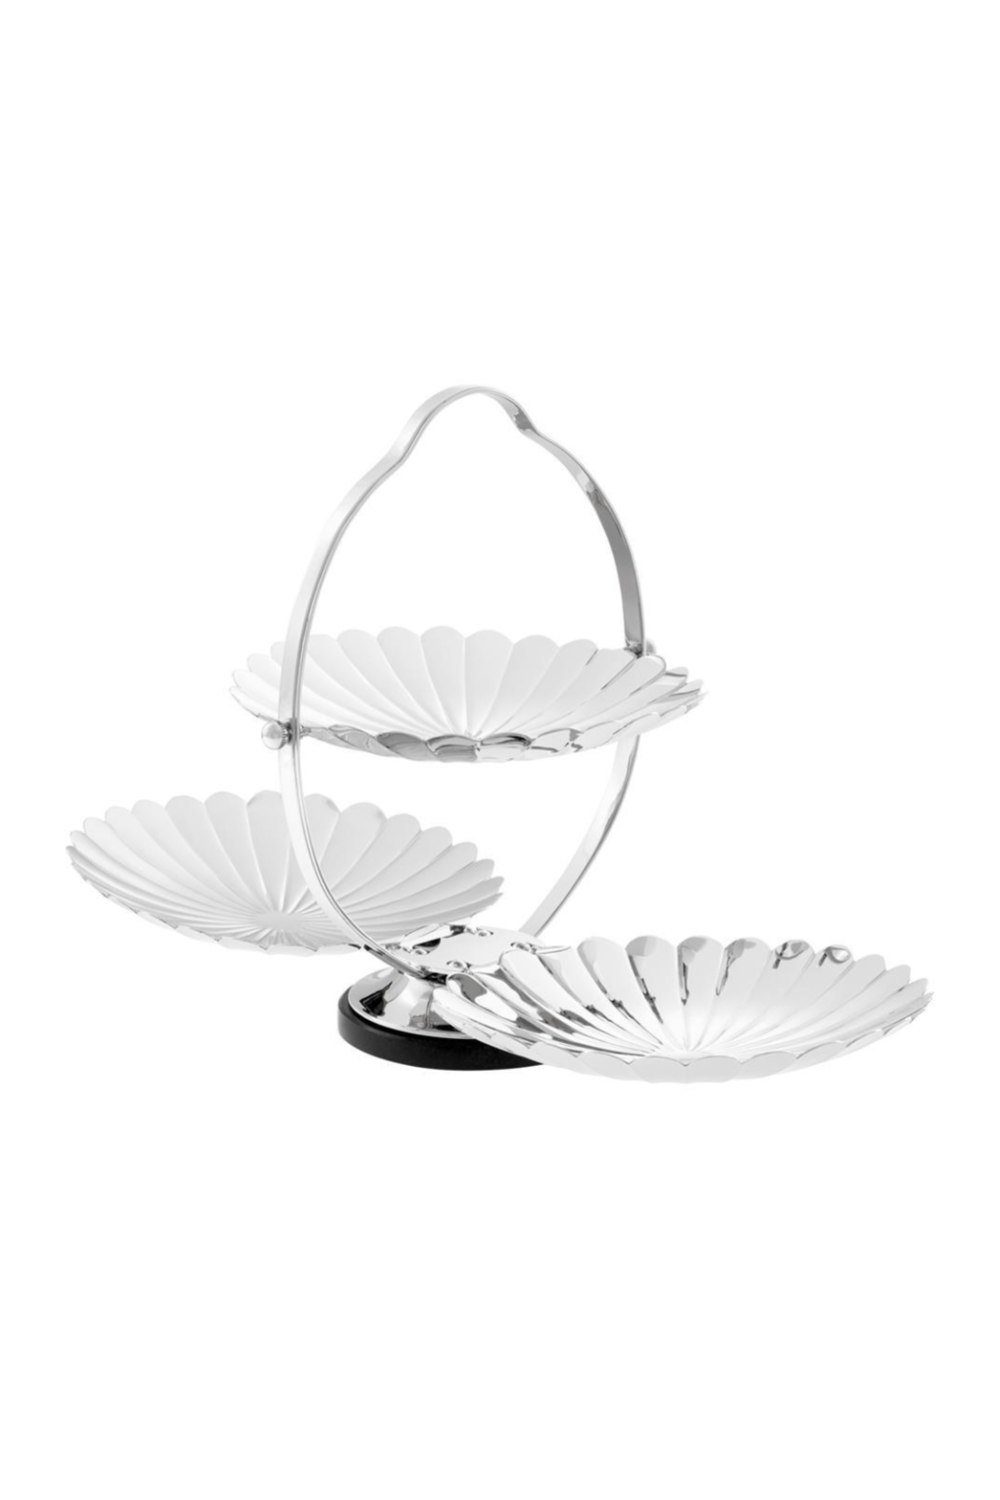 3 Tier Scalloped Tray | Eichholtz Beatrice